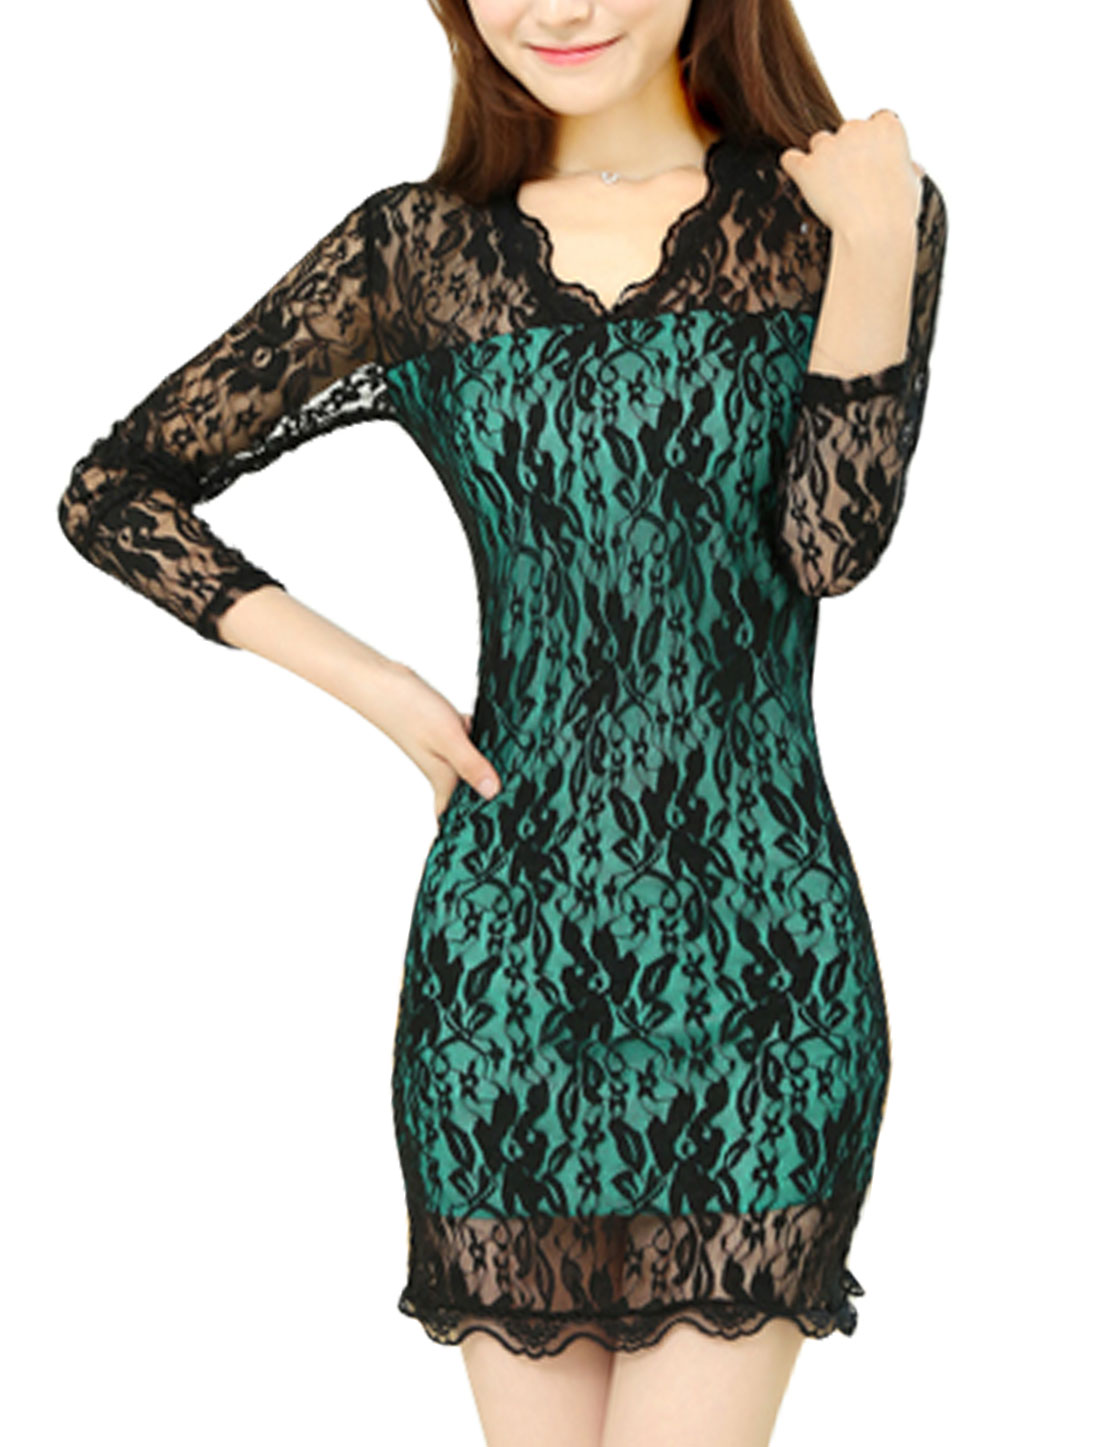 Women Long Sleeve V Neck Stretchy Mini Leisure Lace Dress Black Sea Green S